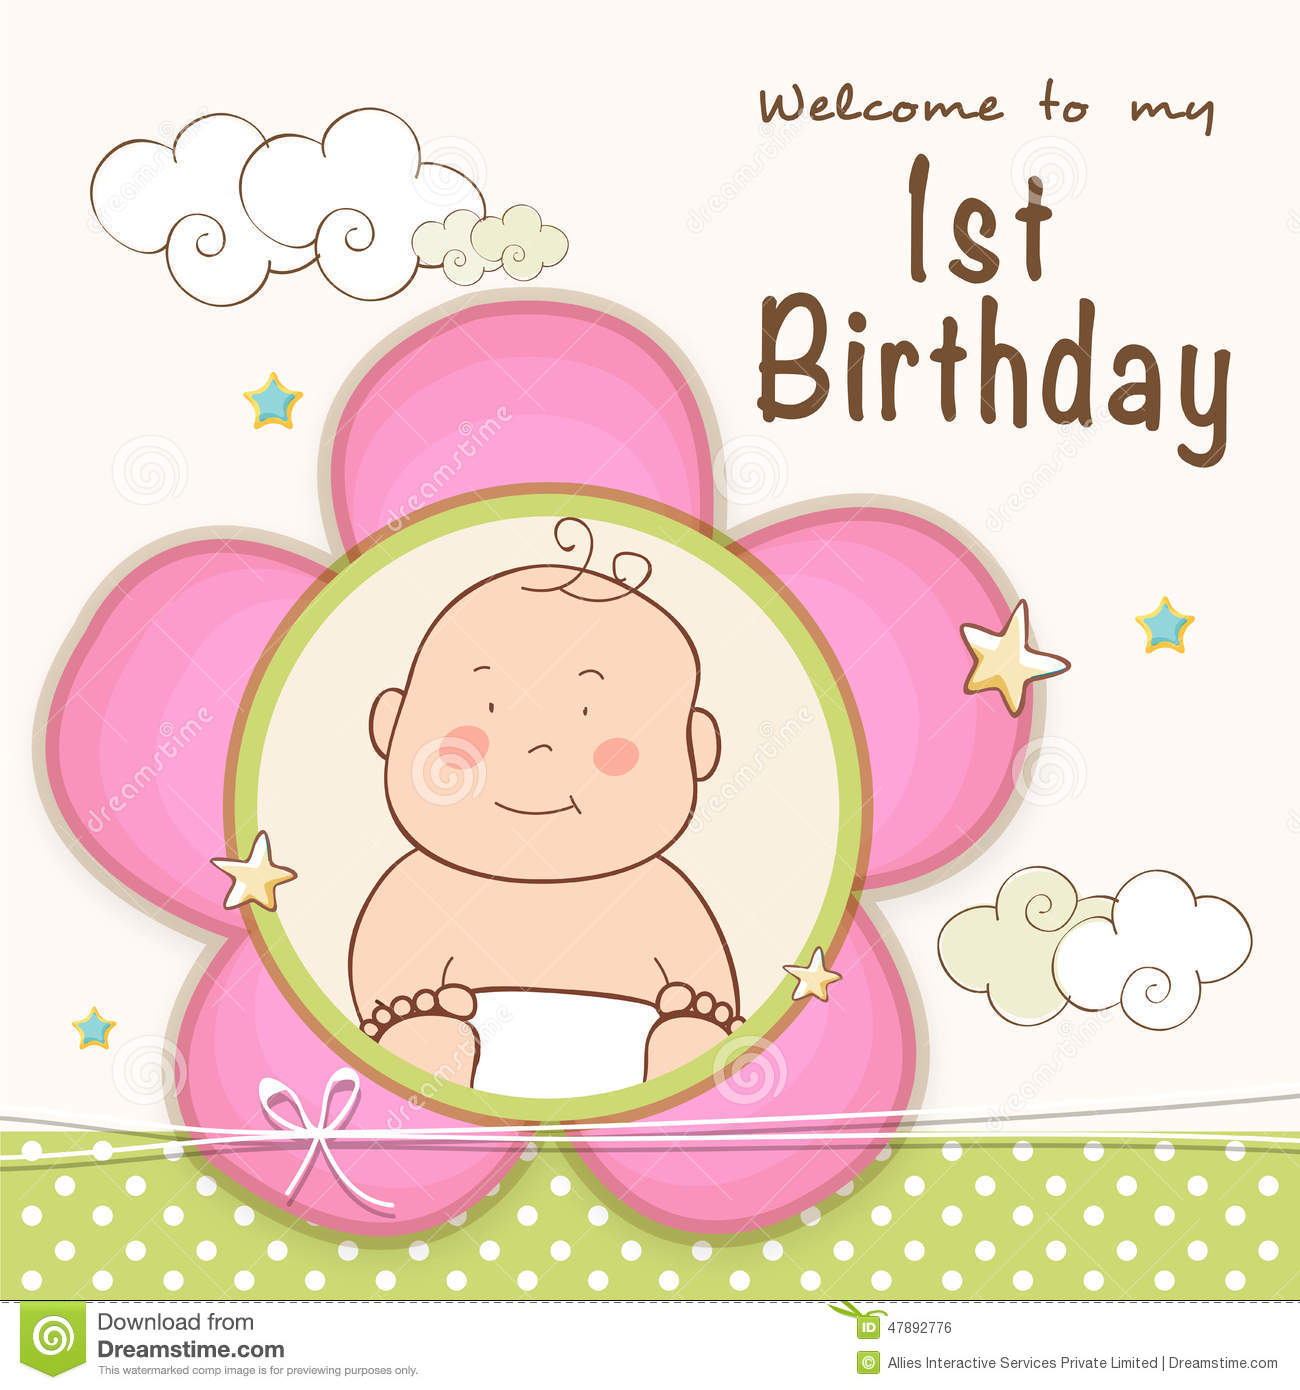 1st birthday invitation card design stock illustration 1st birthday invitation card design stock illustration illustration of kids celebration 47892776 filmwisefo